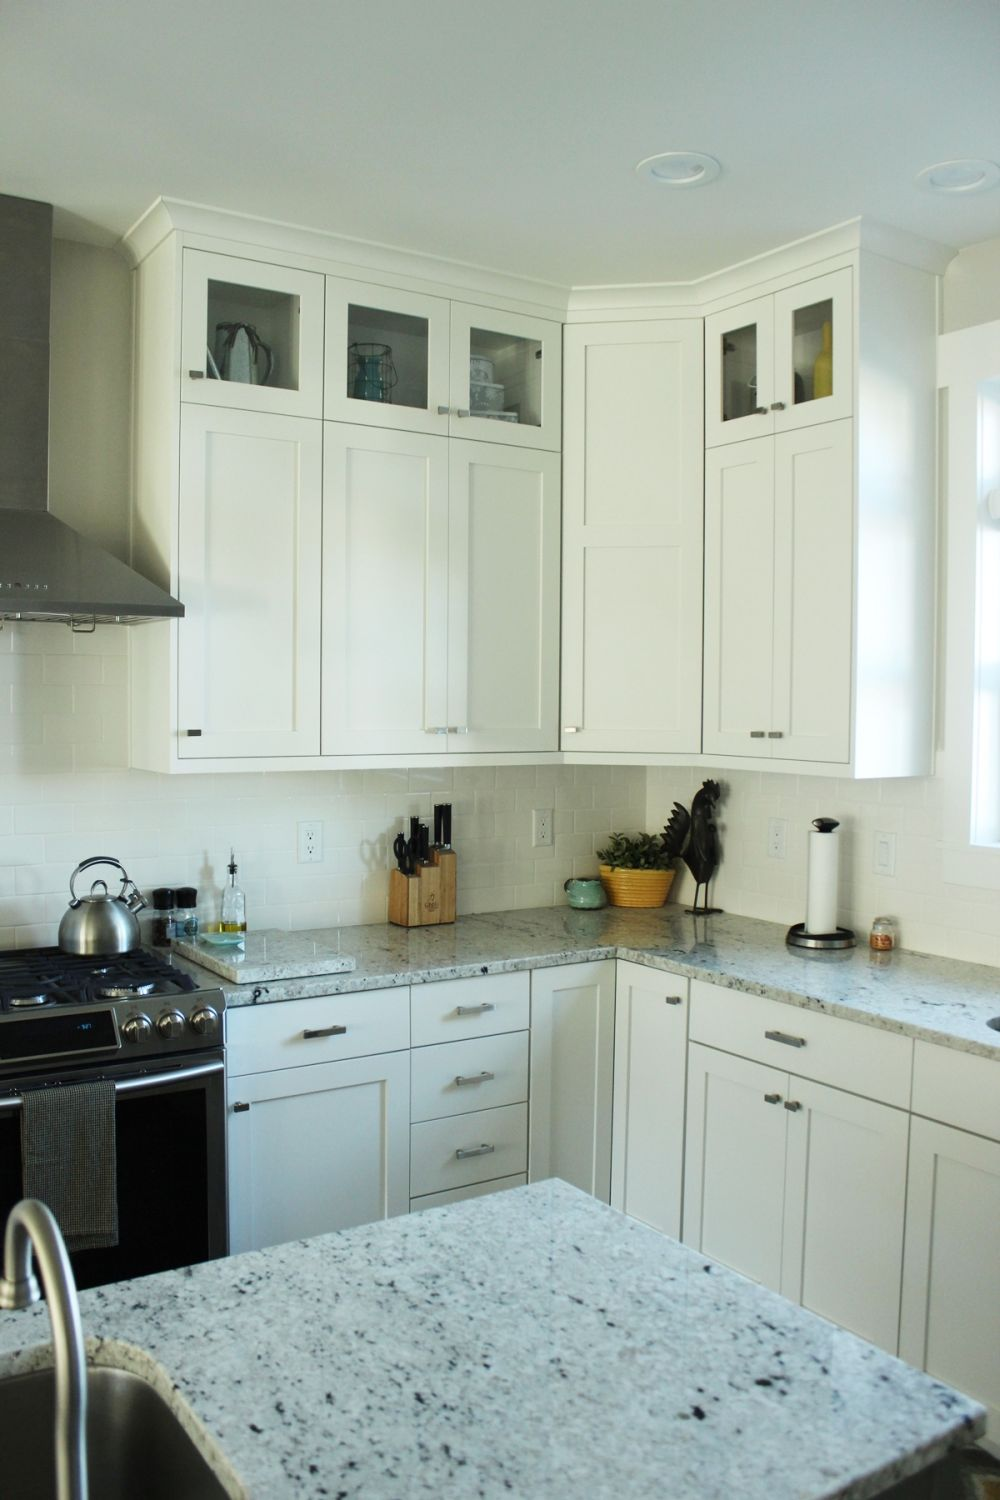 How to Decorate a Kitchen…Without Losing Countertop Space on Counter Decor  id=97150